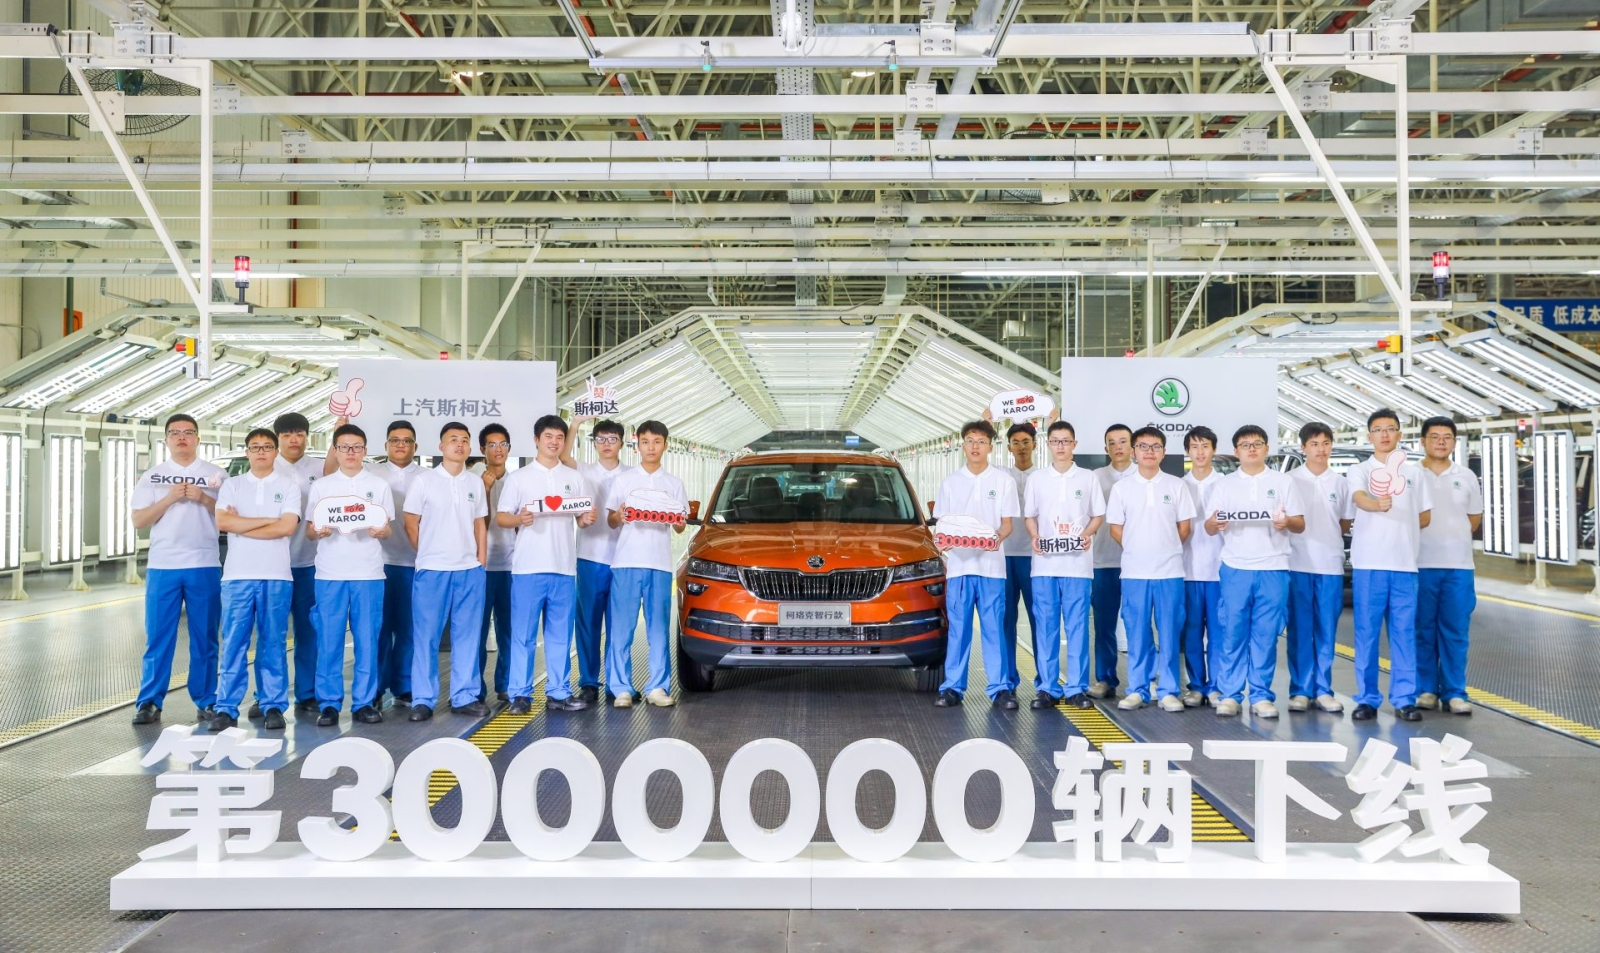 001-production-milestone-skoda-auto-manufactures-three-millionth-car-in-china-1920x1144